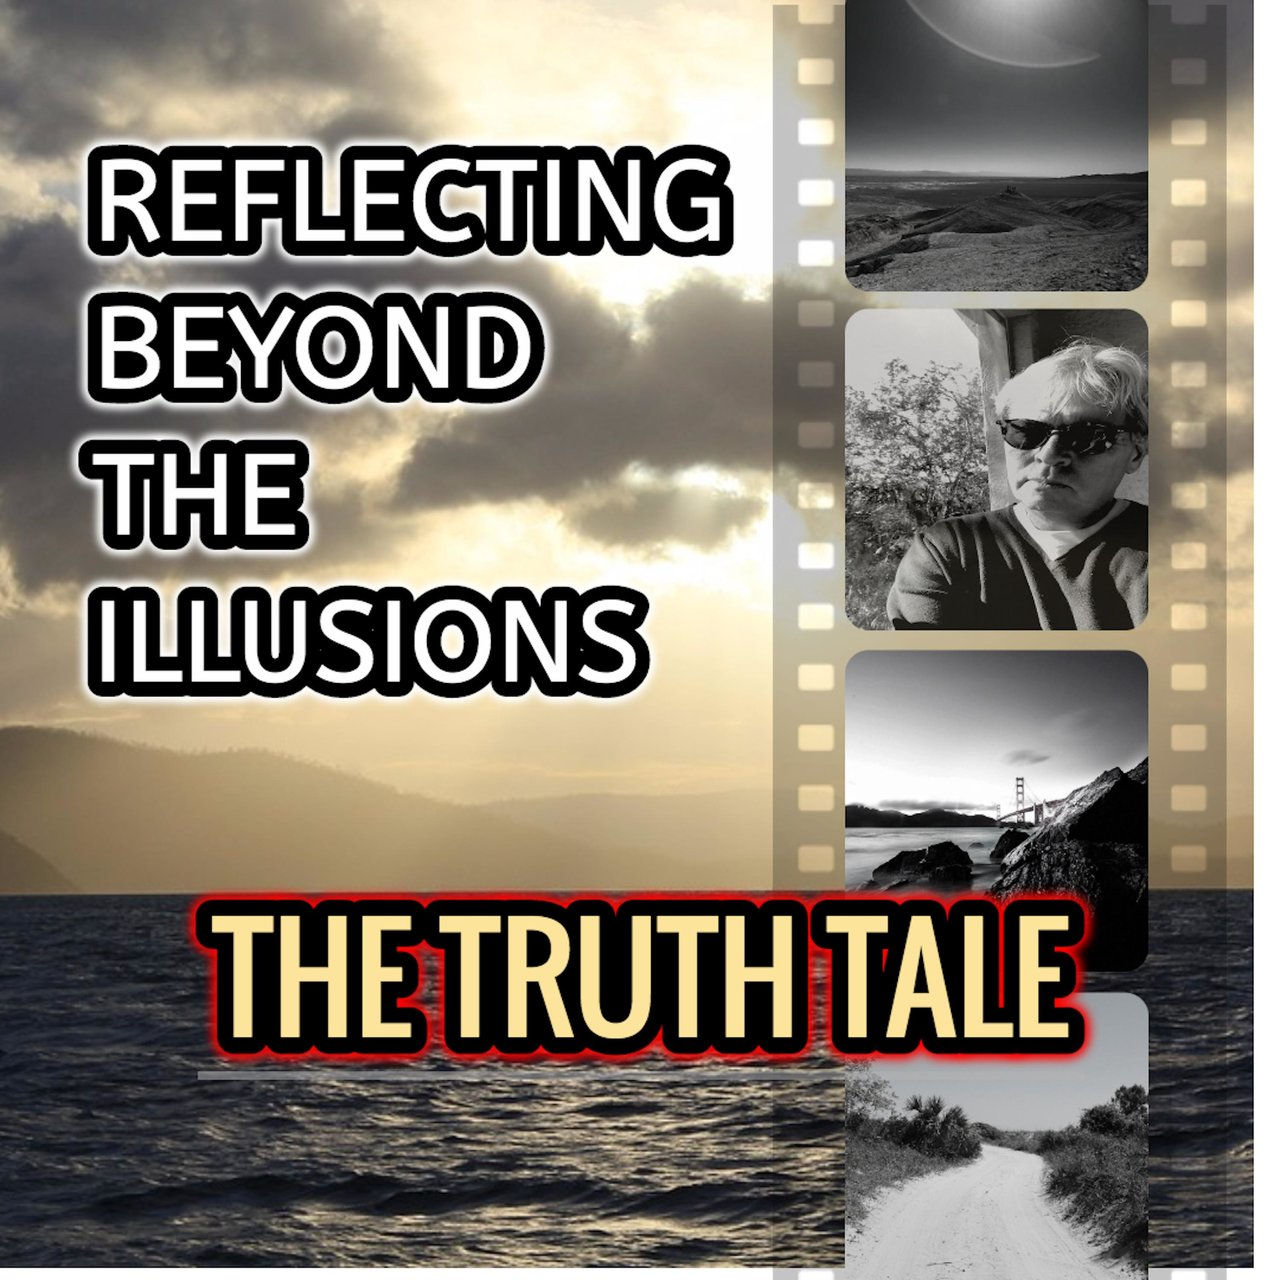 Reflecting Beyond the Illusions